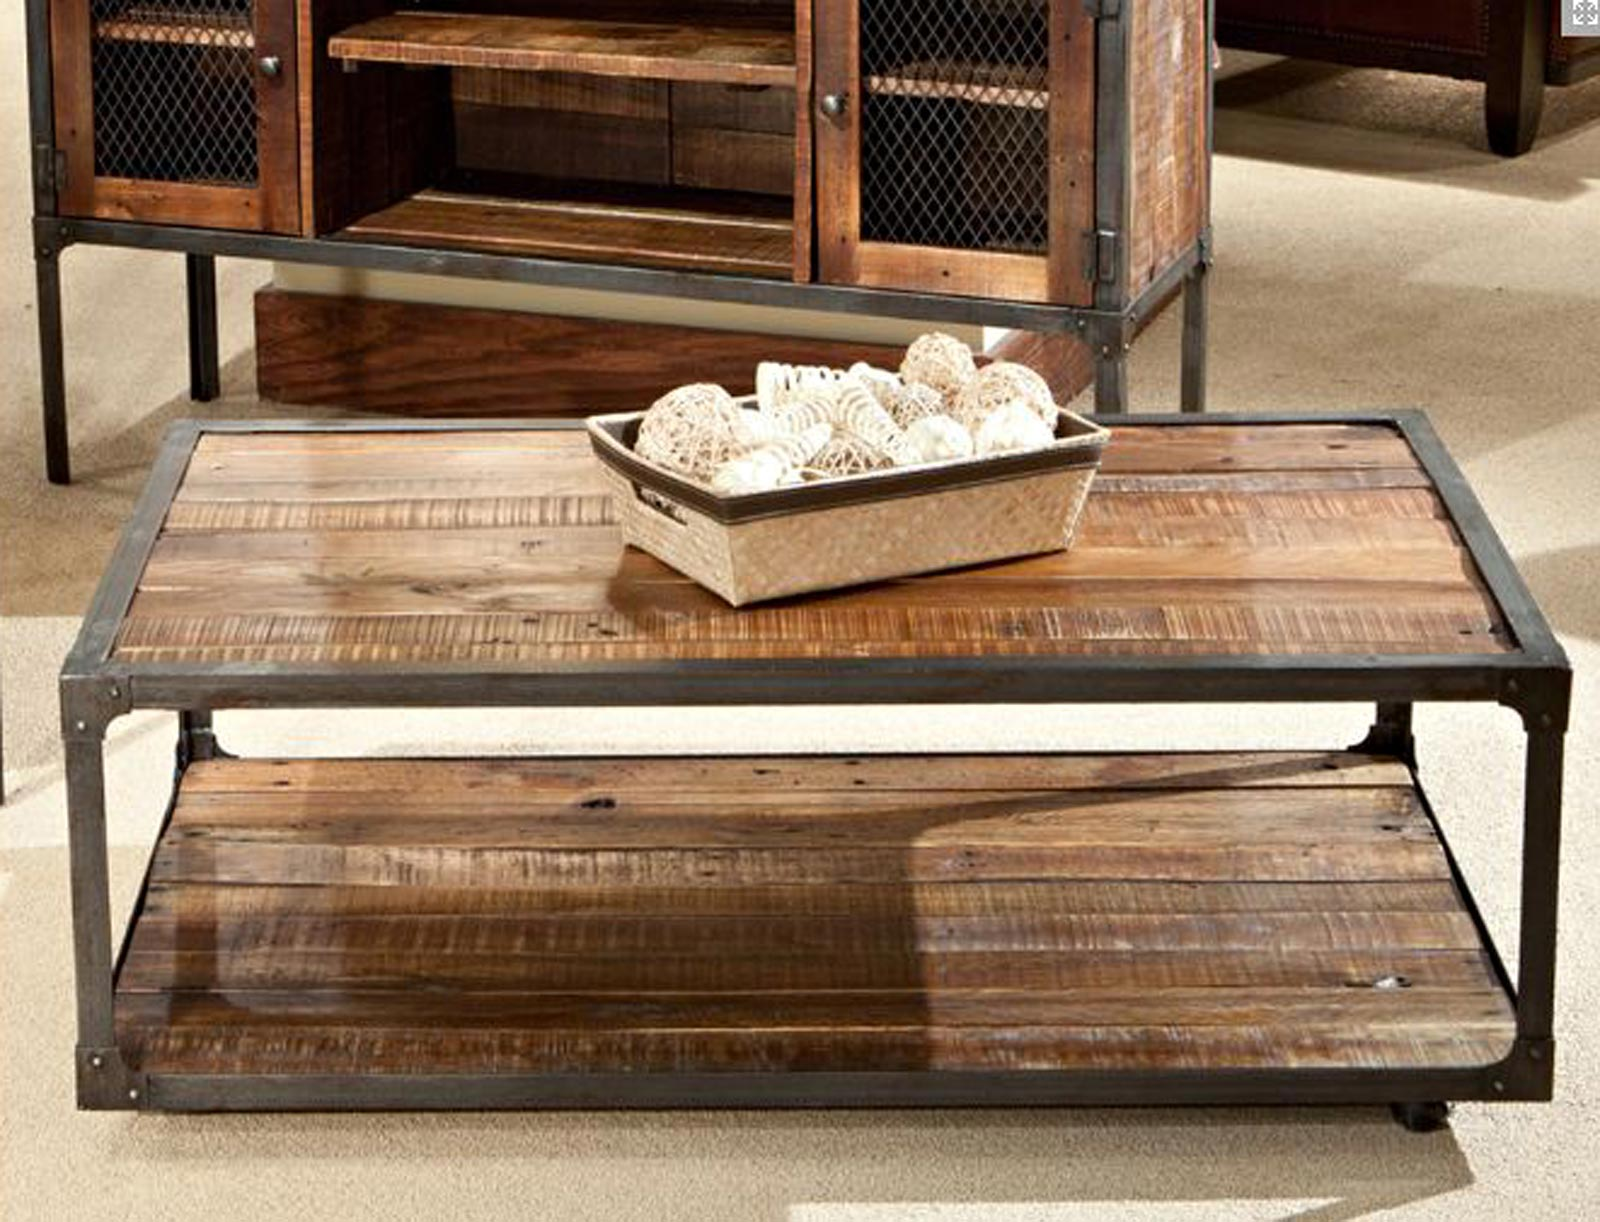 Marvelous Framed Rustic Coffee Table Looks Rather Well Rustic